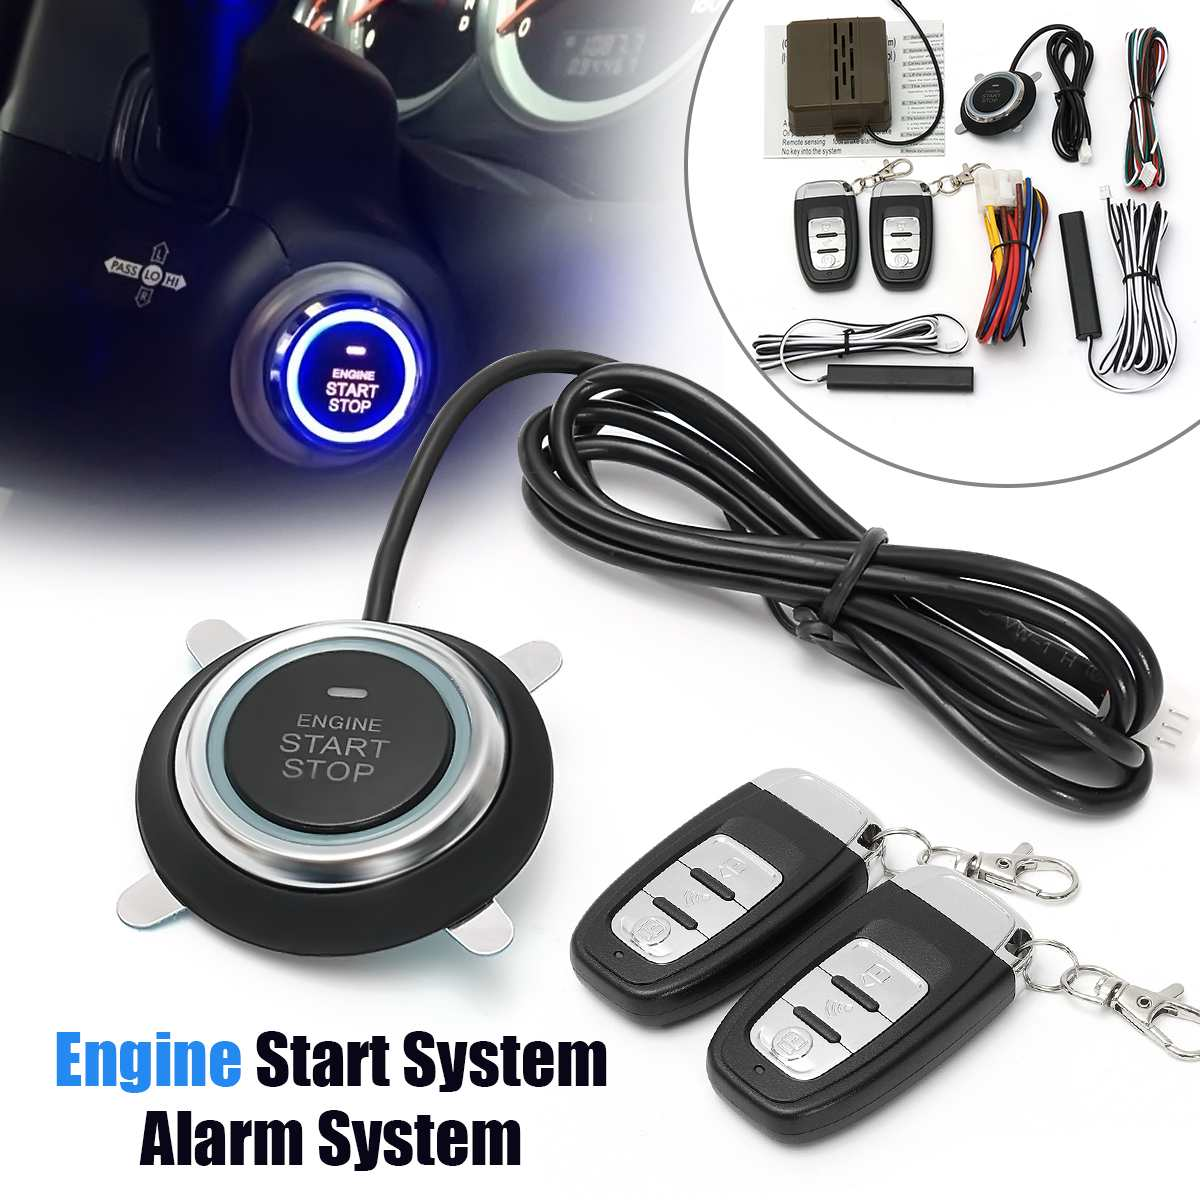 Audew Car Engine Start Stop SUV Keyless Entry Engine Start Alarm System Push Button Remote Starter Stop Auto Car Accessories